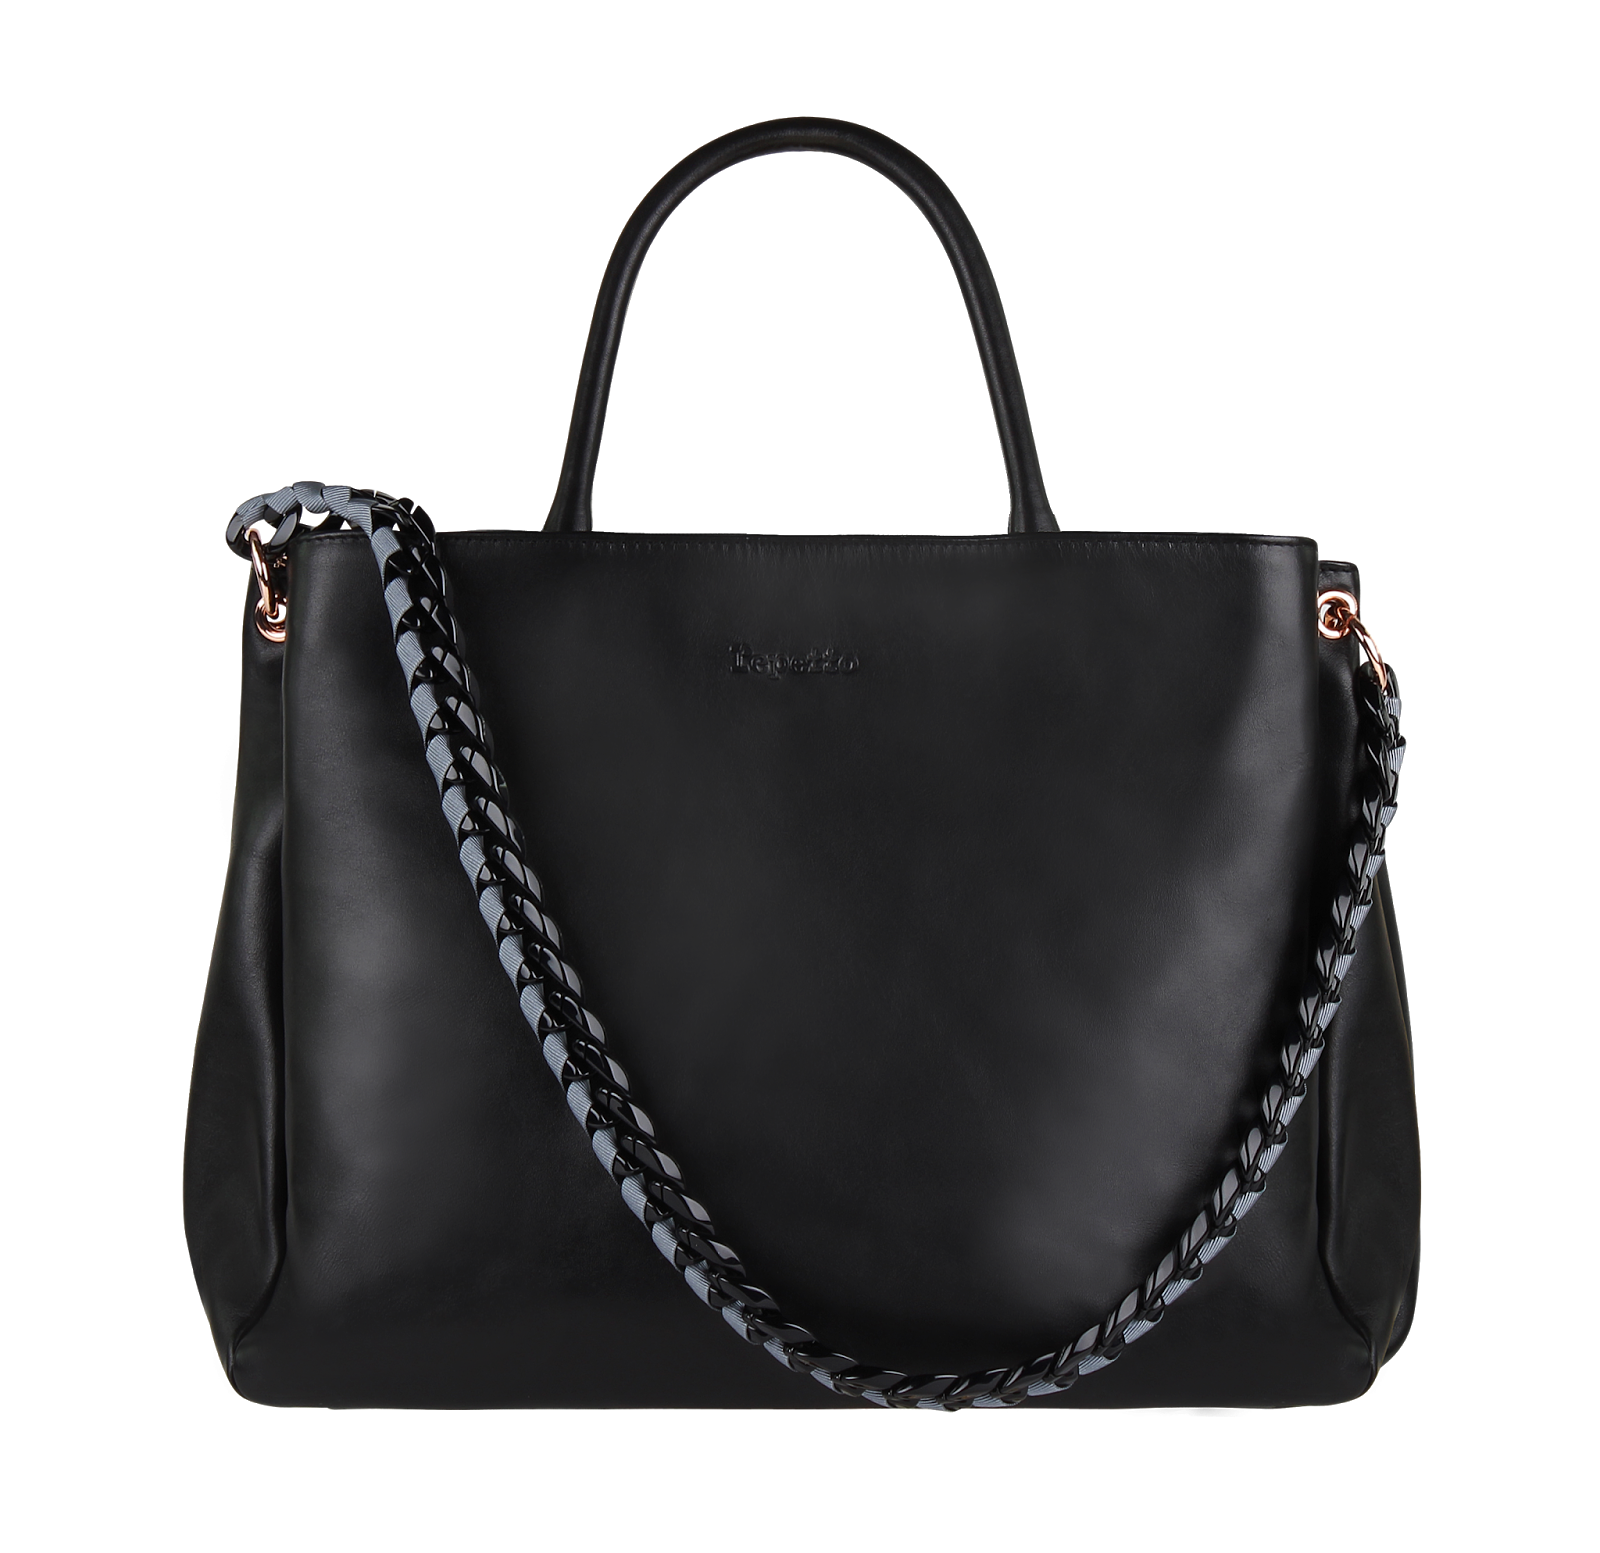 Repetto's Fall/Winter 2014 Bags